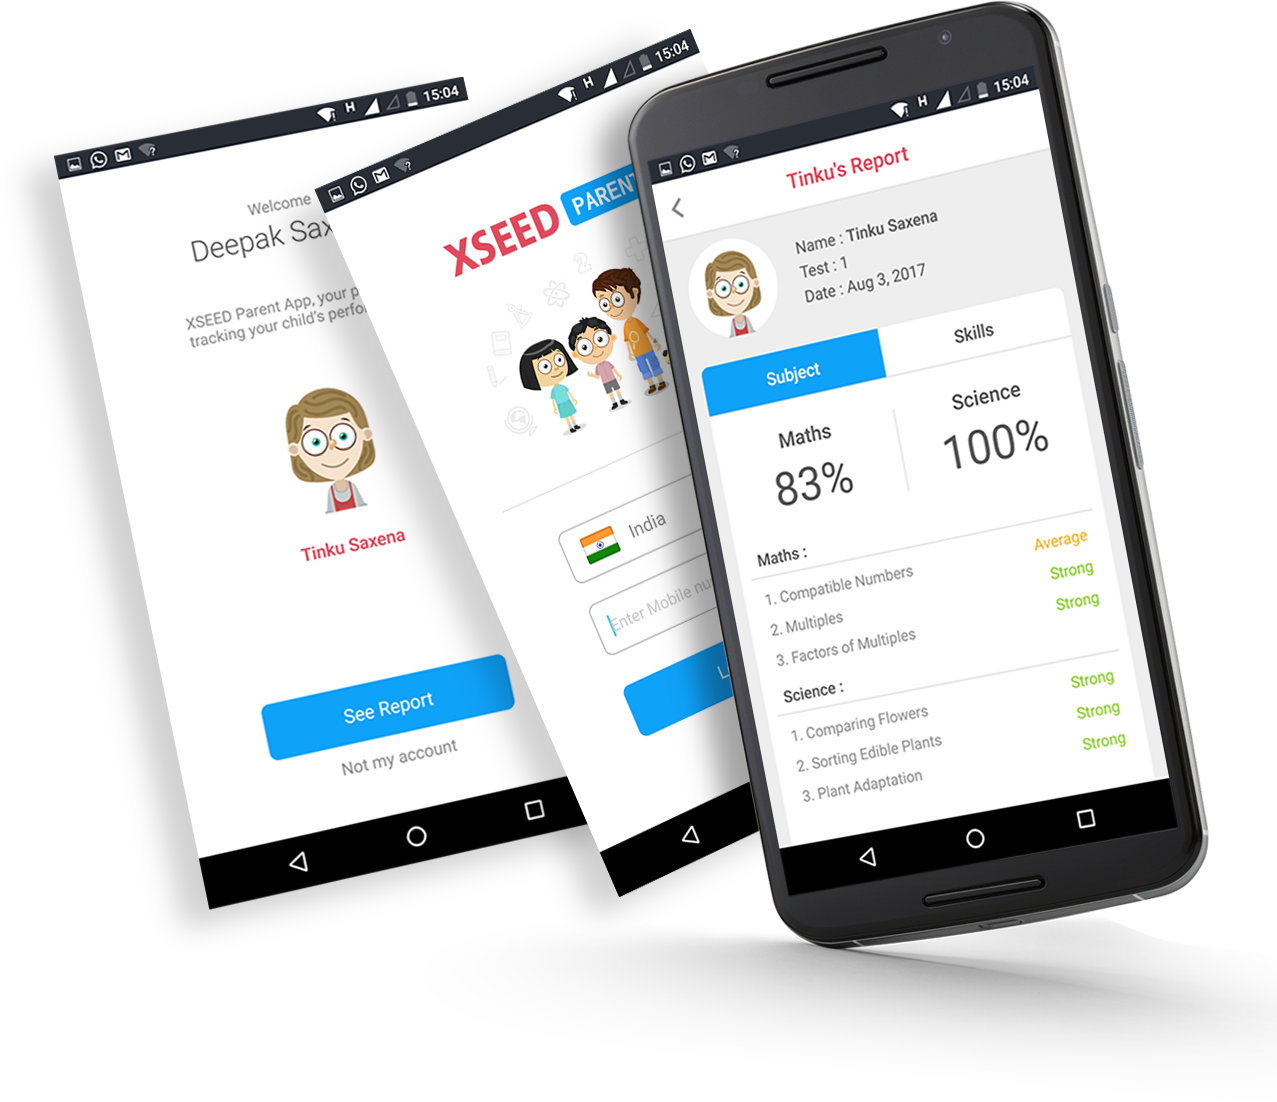 XSEED-App-development-Desing-Screen-FuGenX